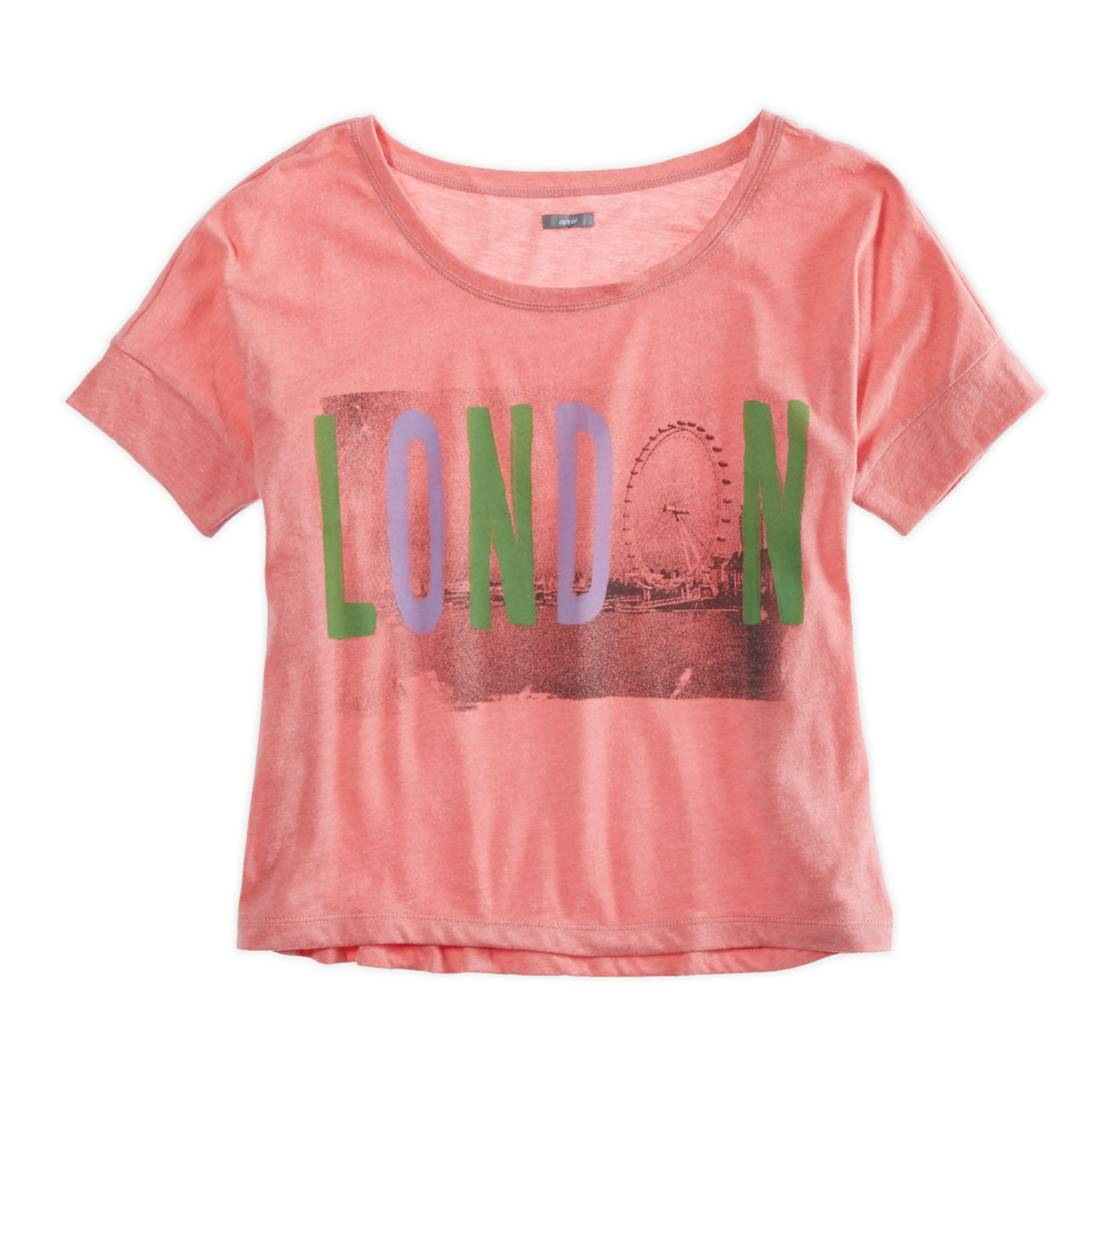 Whipped Strawberry Aerie Favorite Cities Graphic Crop T-Shirt